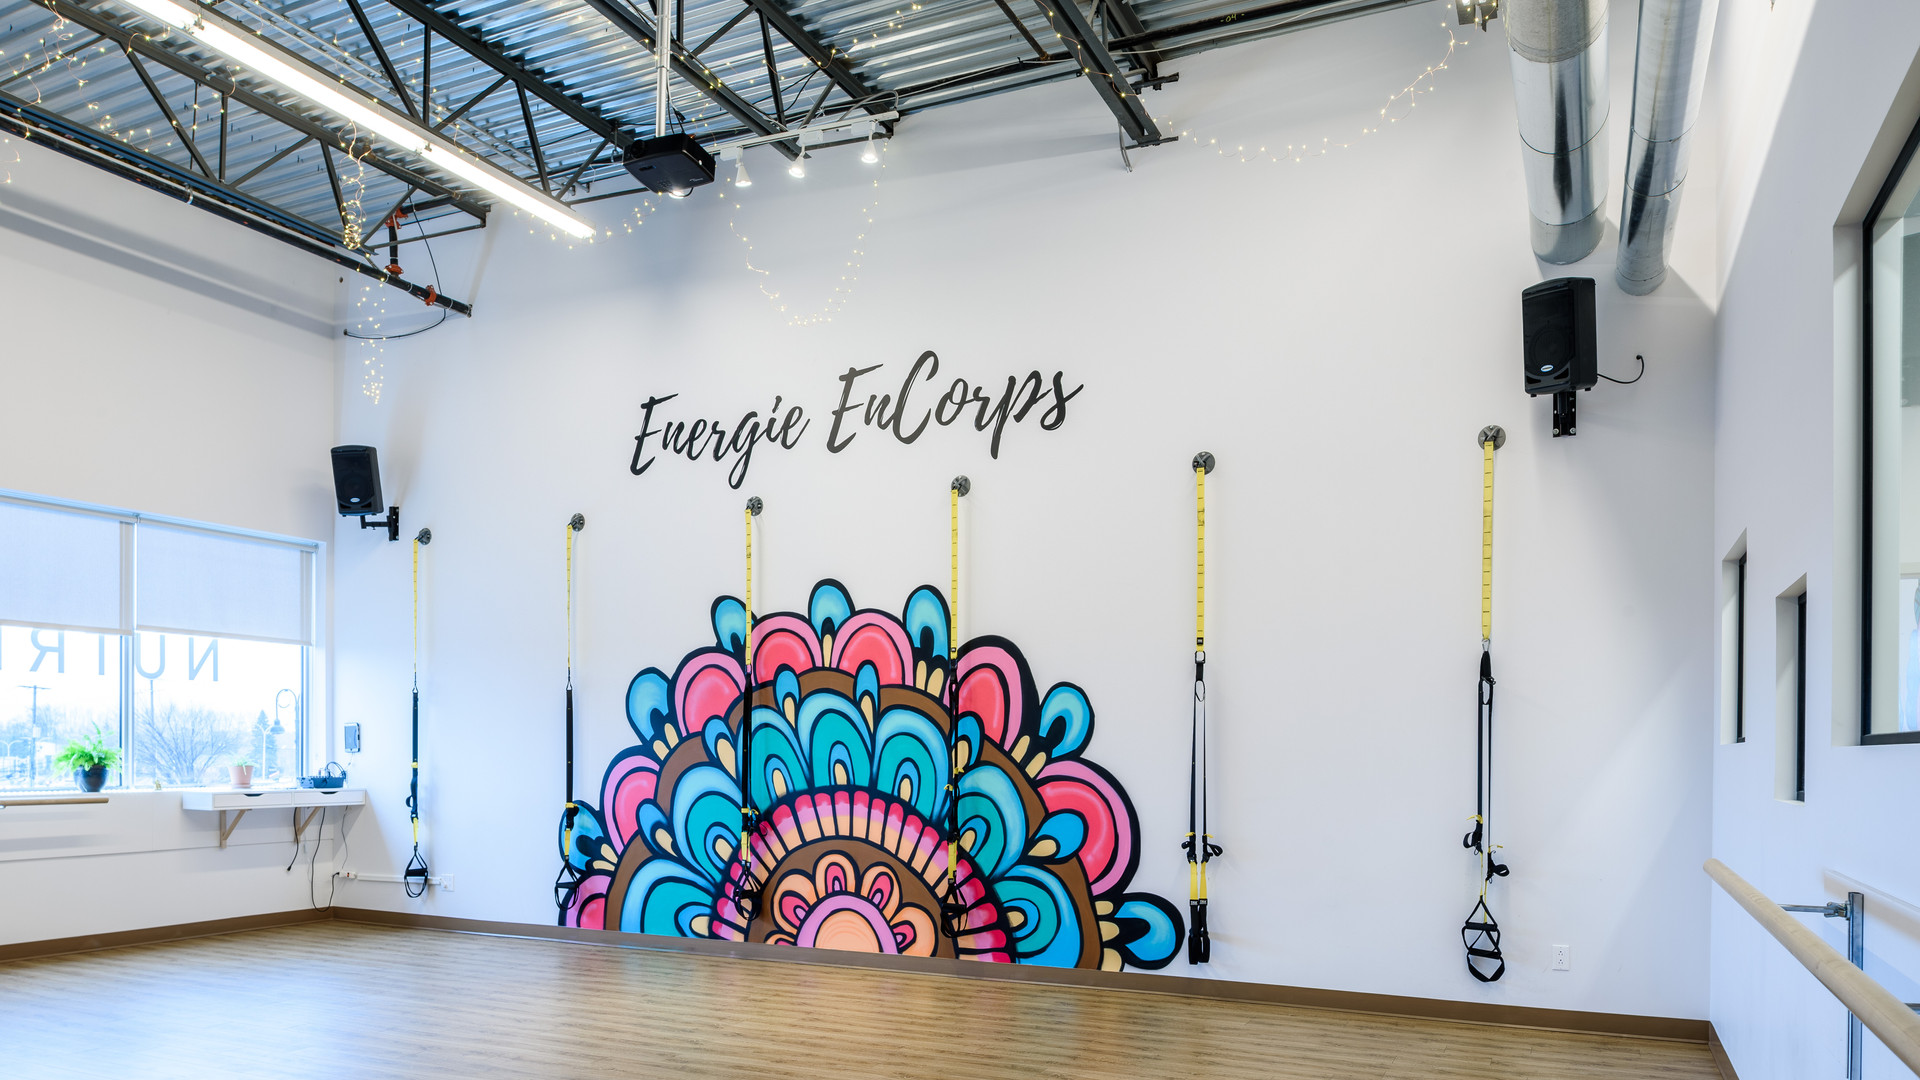 Energie EnCorps yoga studio